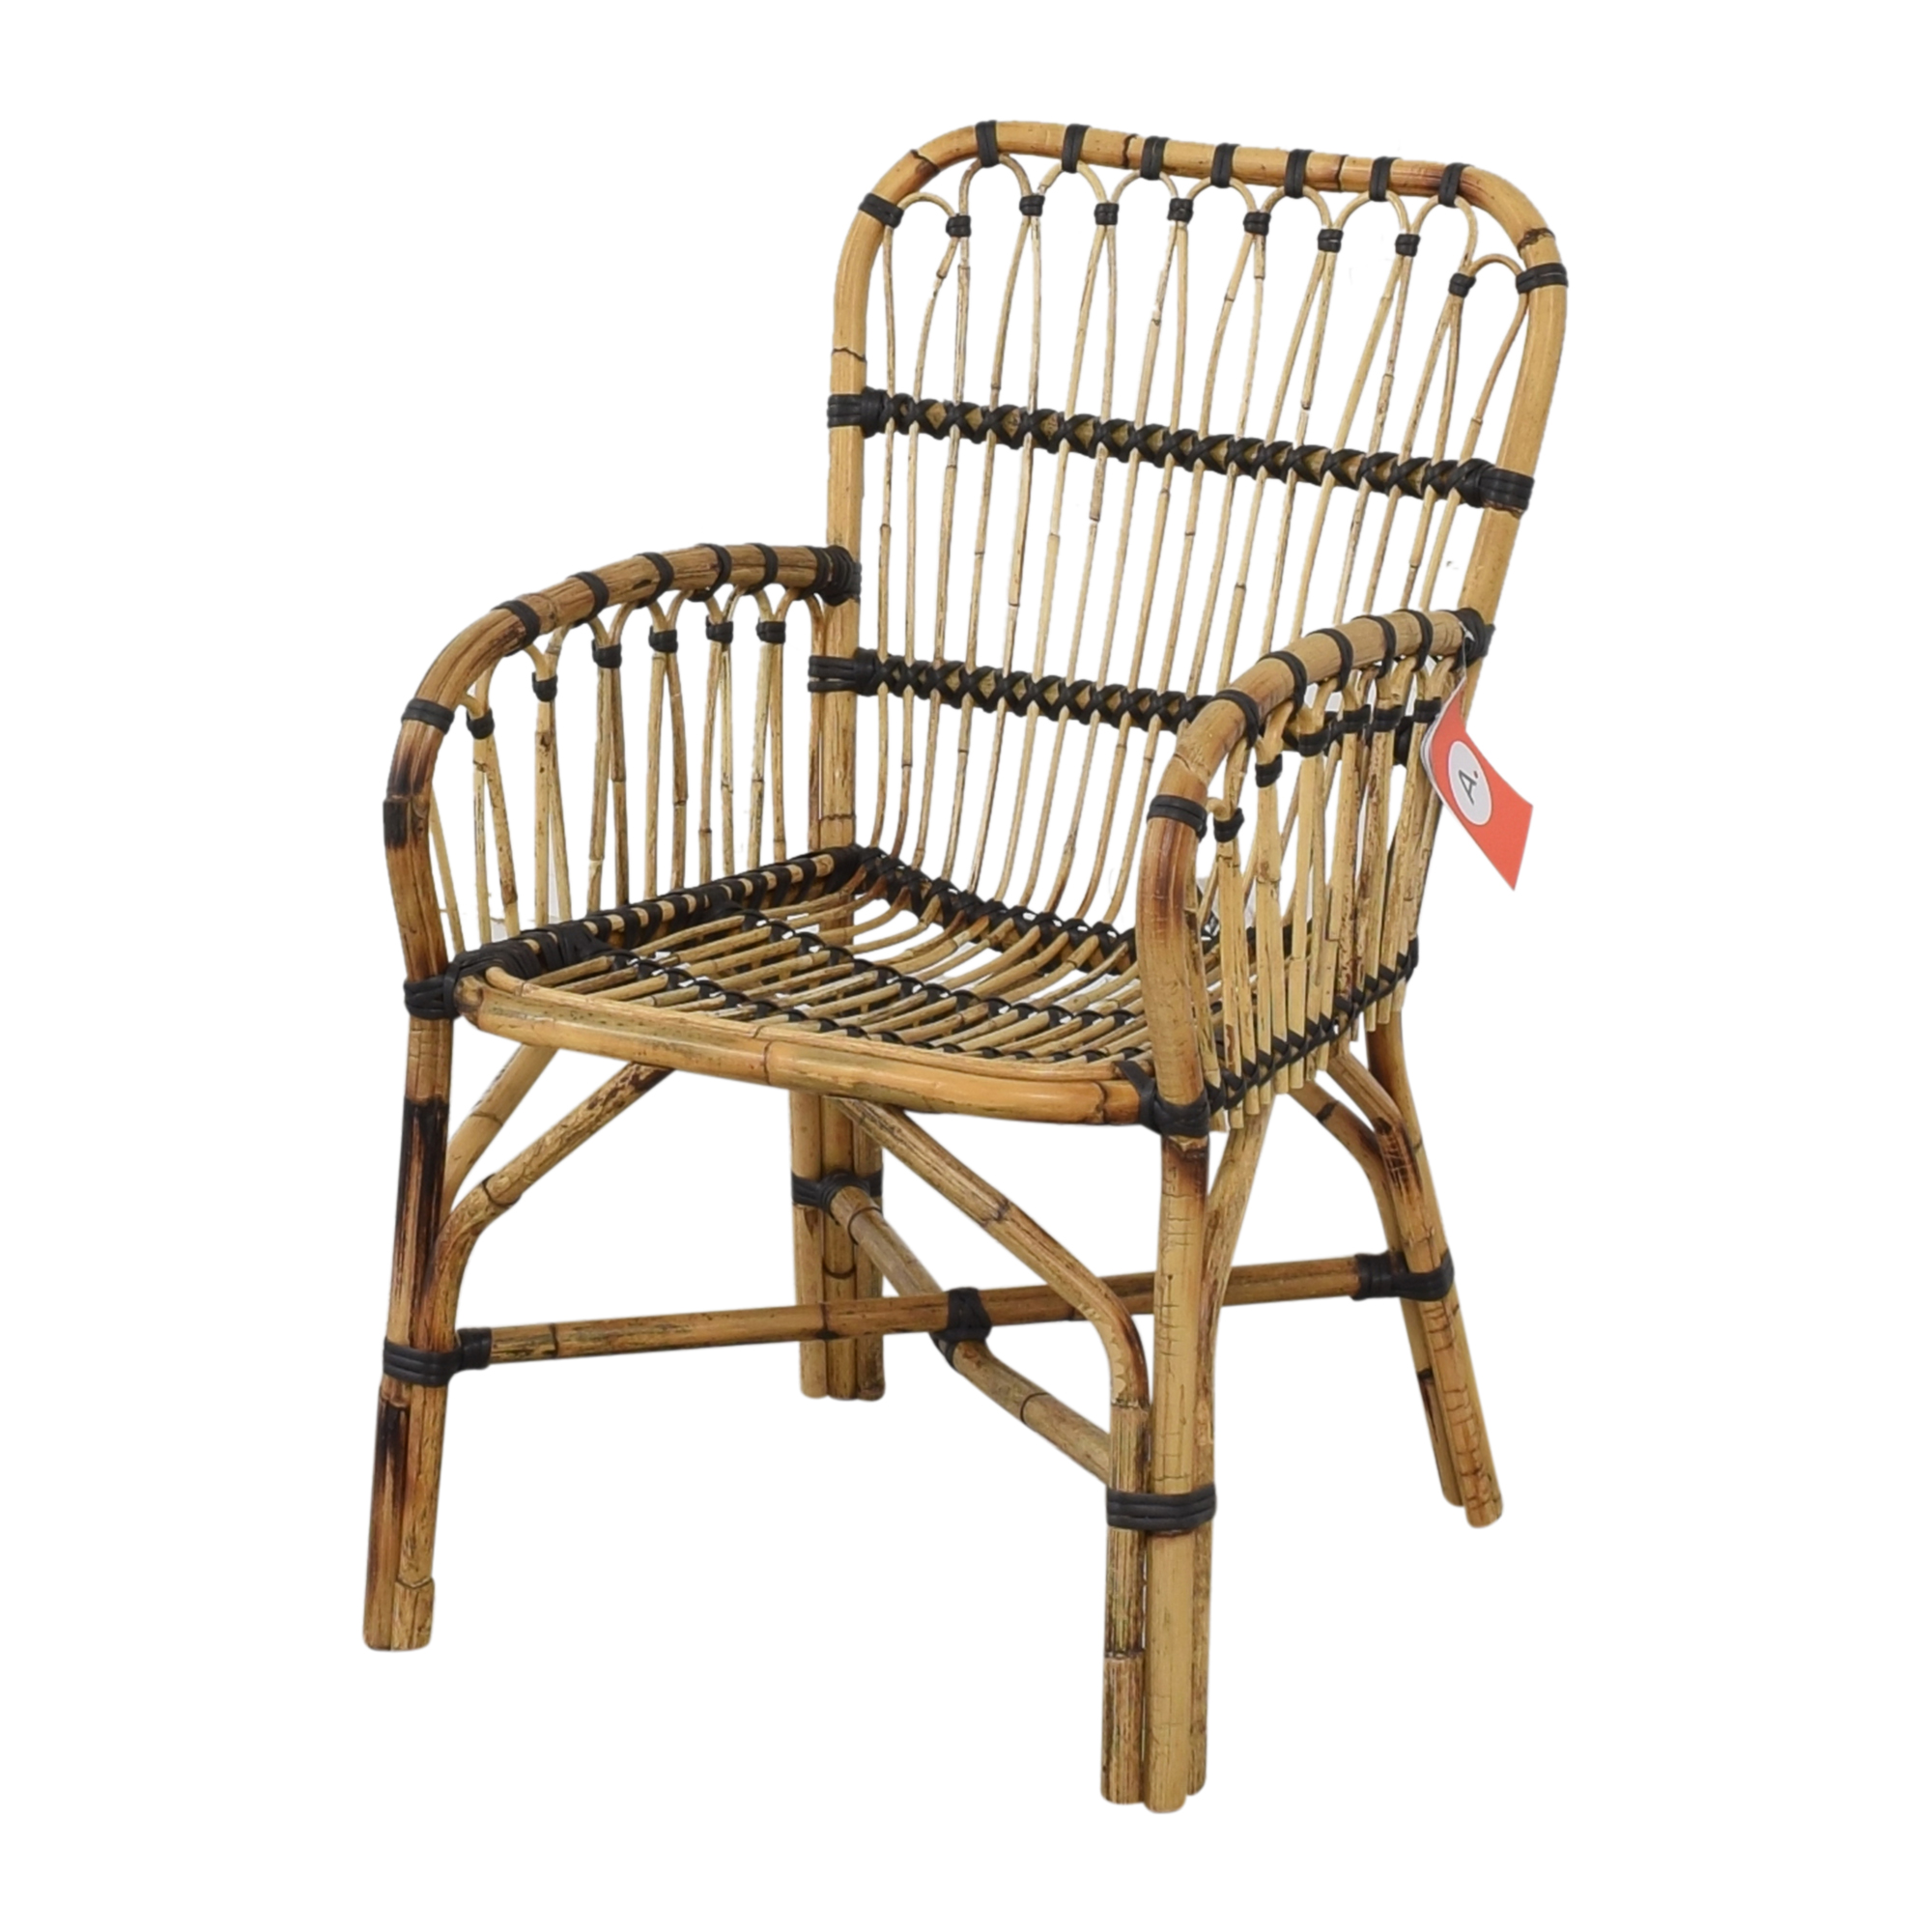 Article Article Malou Rattan Dining Chairs dimensions